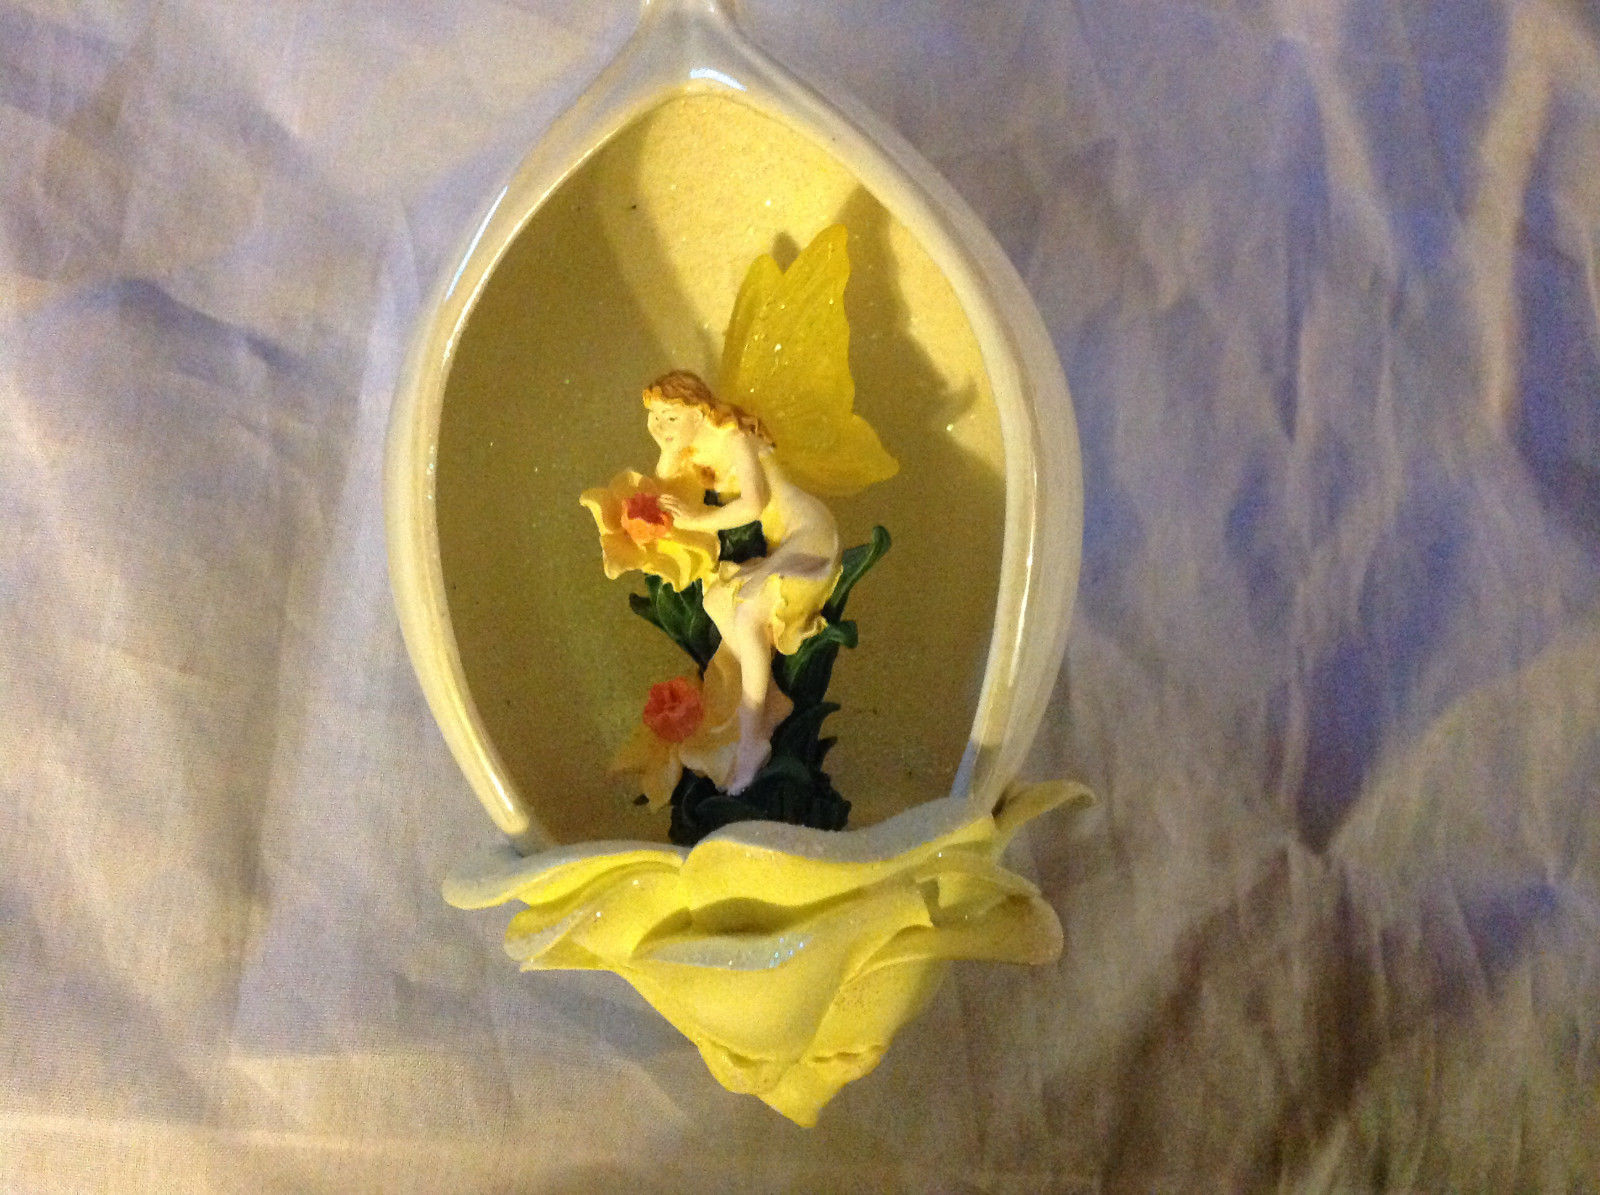 Bradford Editions Heirloom Porcelain Flower Fairy Ornament Ribbon for Hanging